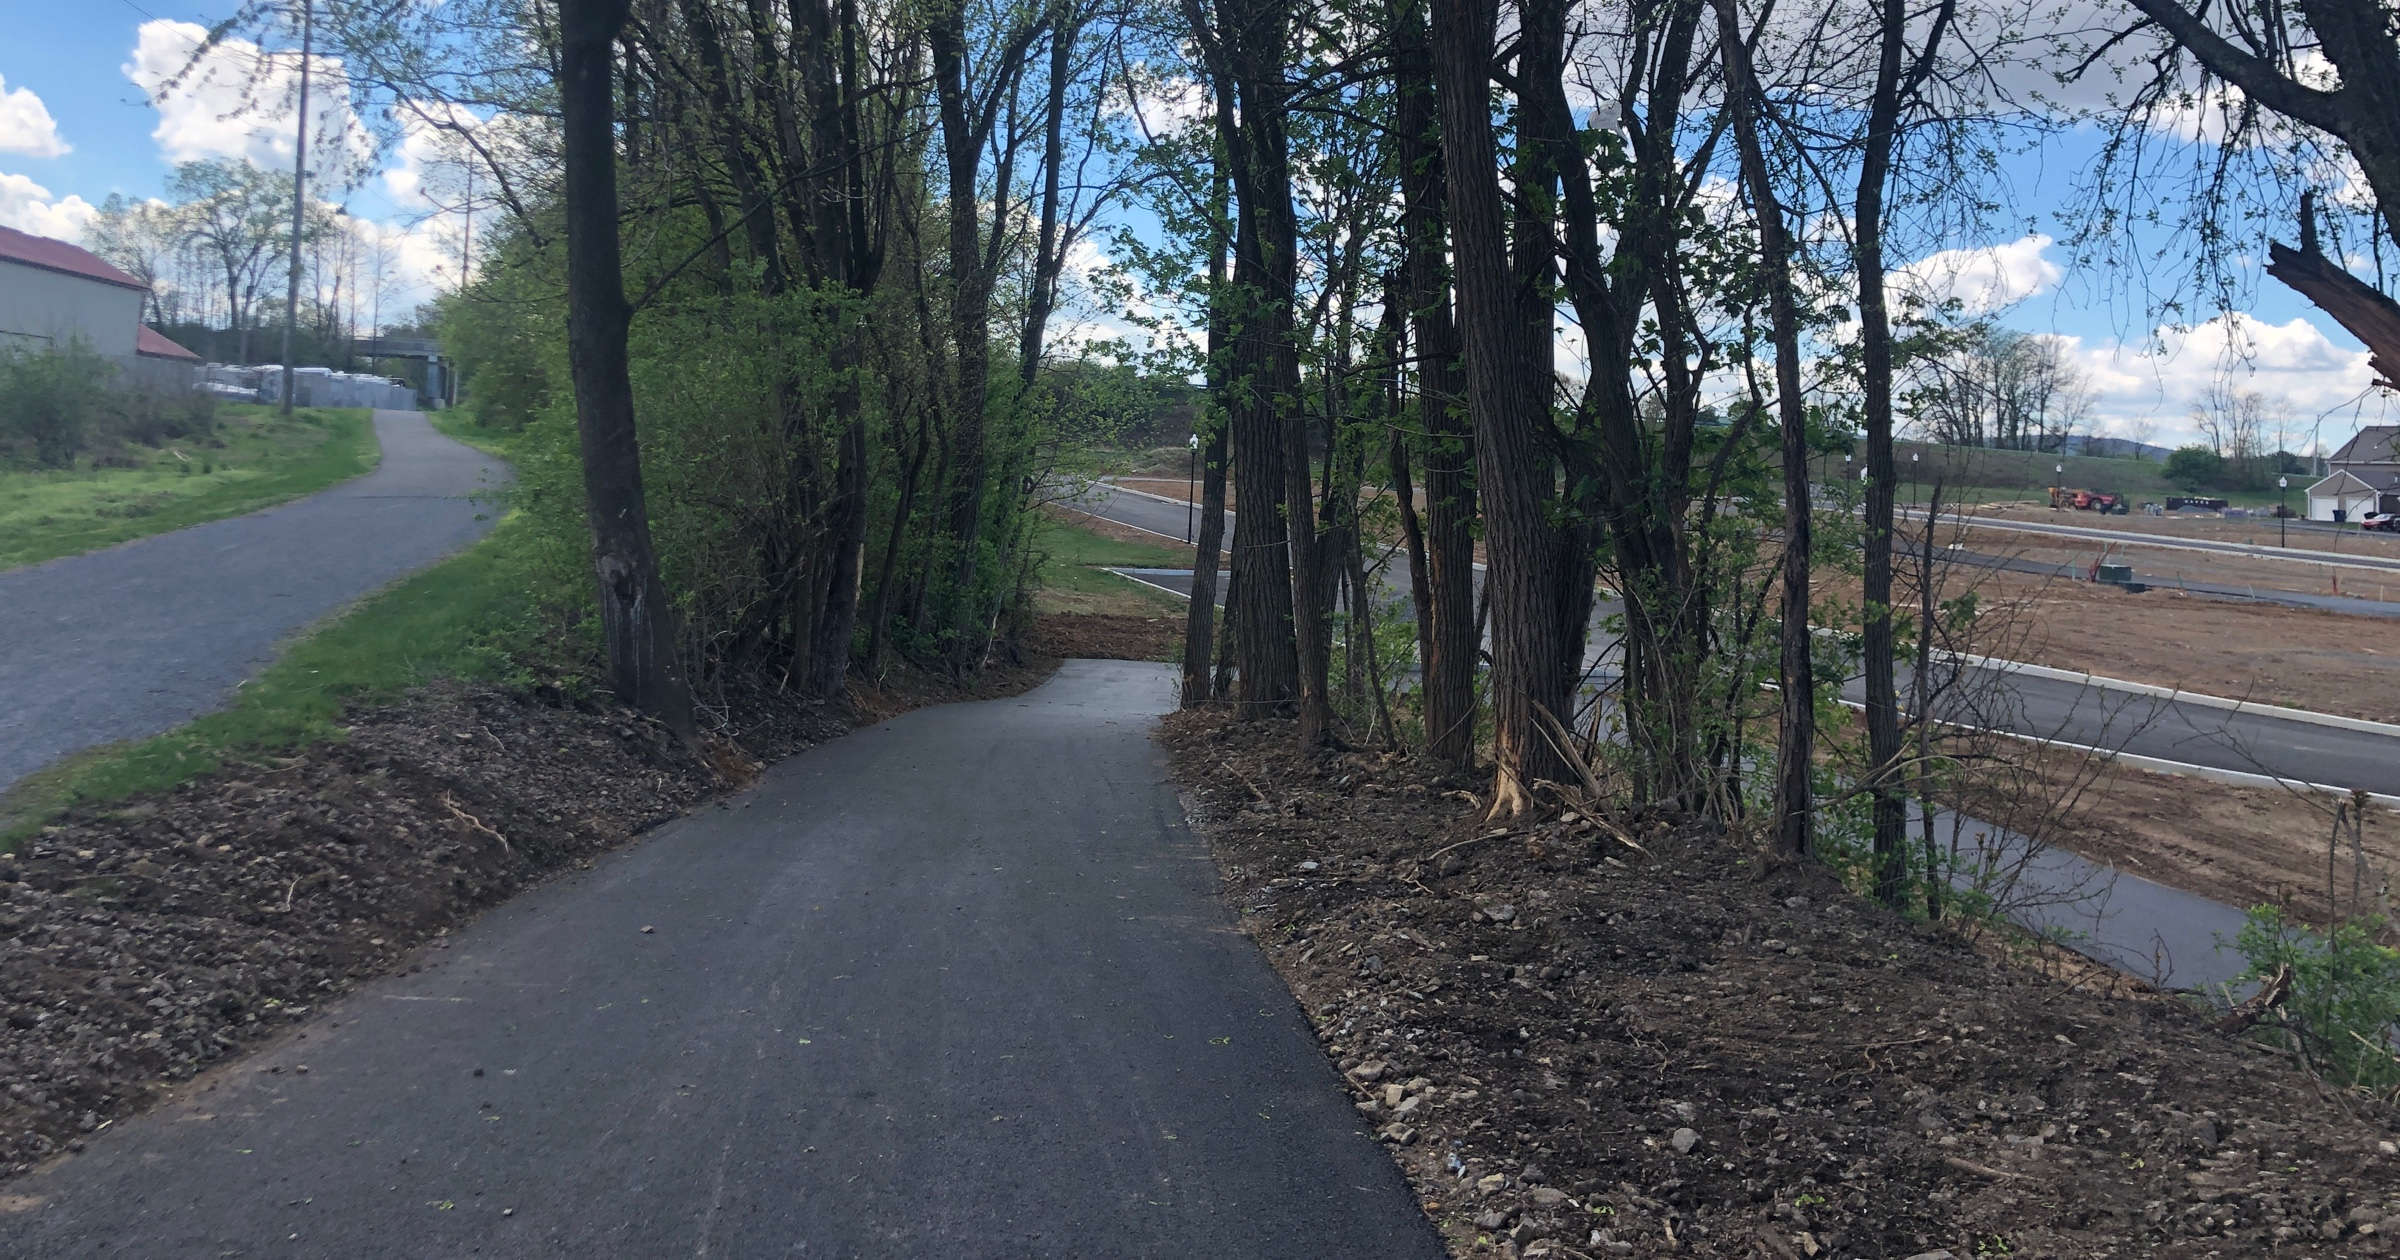 New Rails to Trails entrance opened at North Cornwall Commons